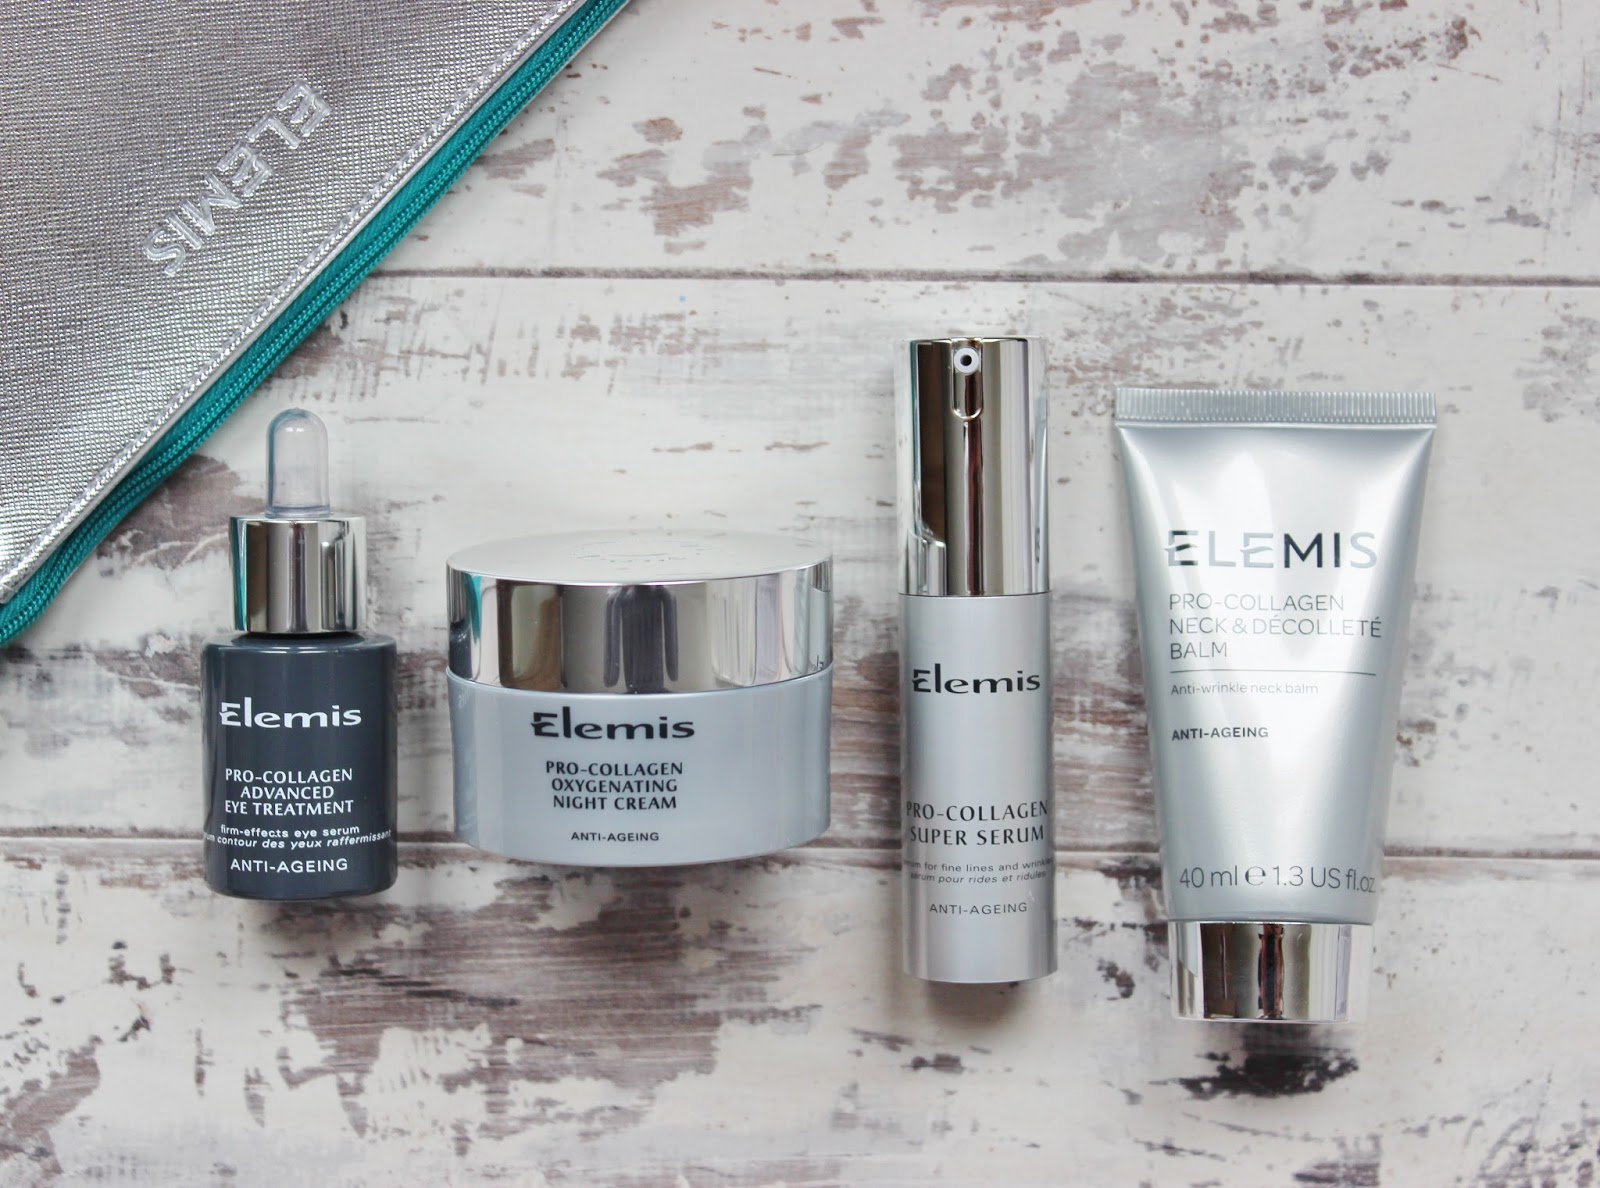 Elemis Pro Collagen QVC TSV 12 September 2015 contents